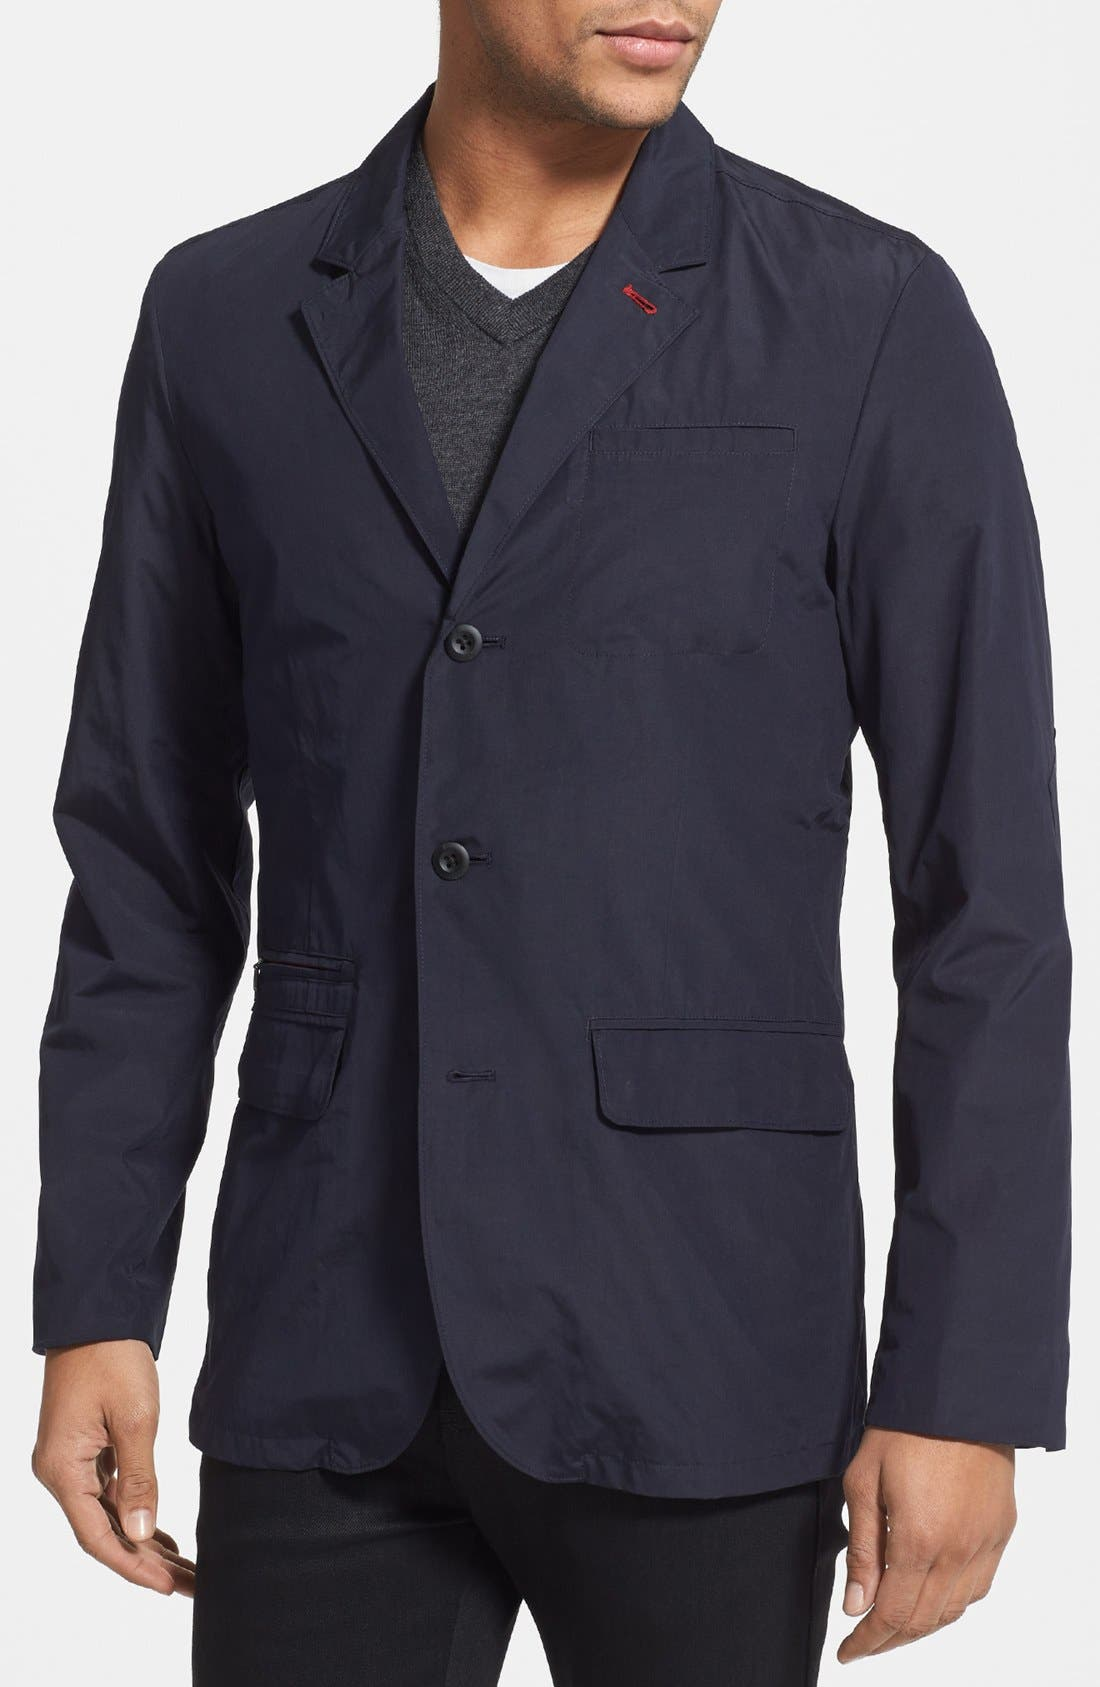 Alternate Image 1 Selected - Victorinox Swiss Army® 'Spring Travel' Water Repellent Blazer